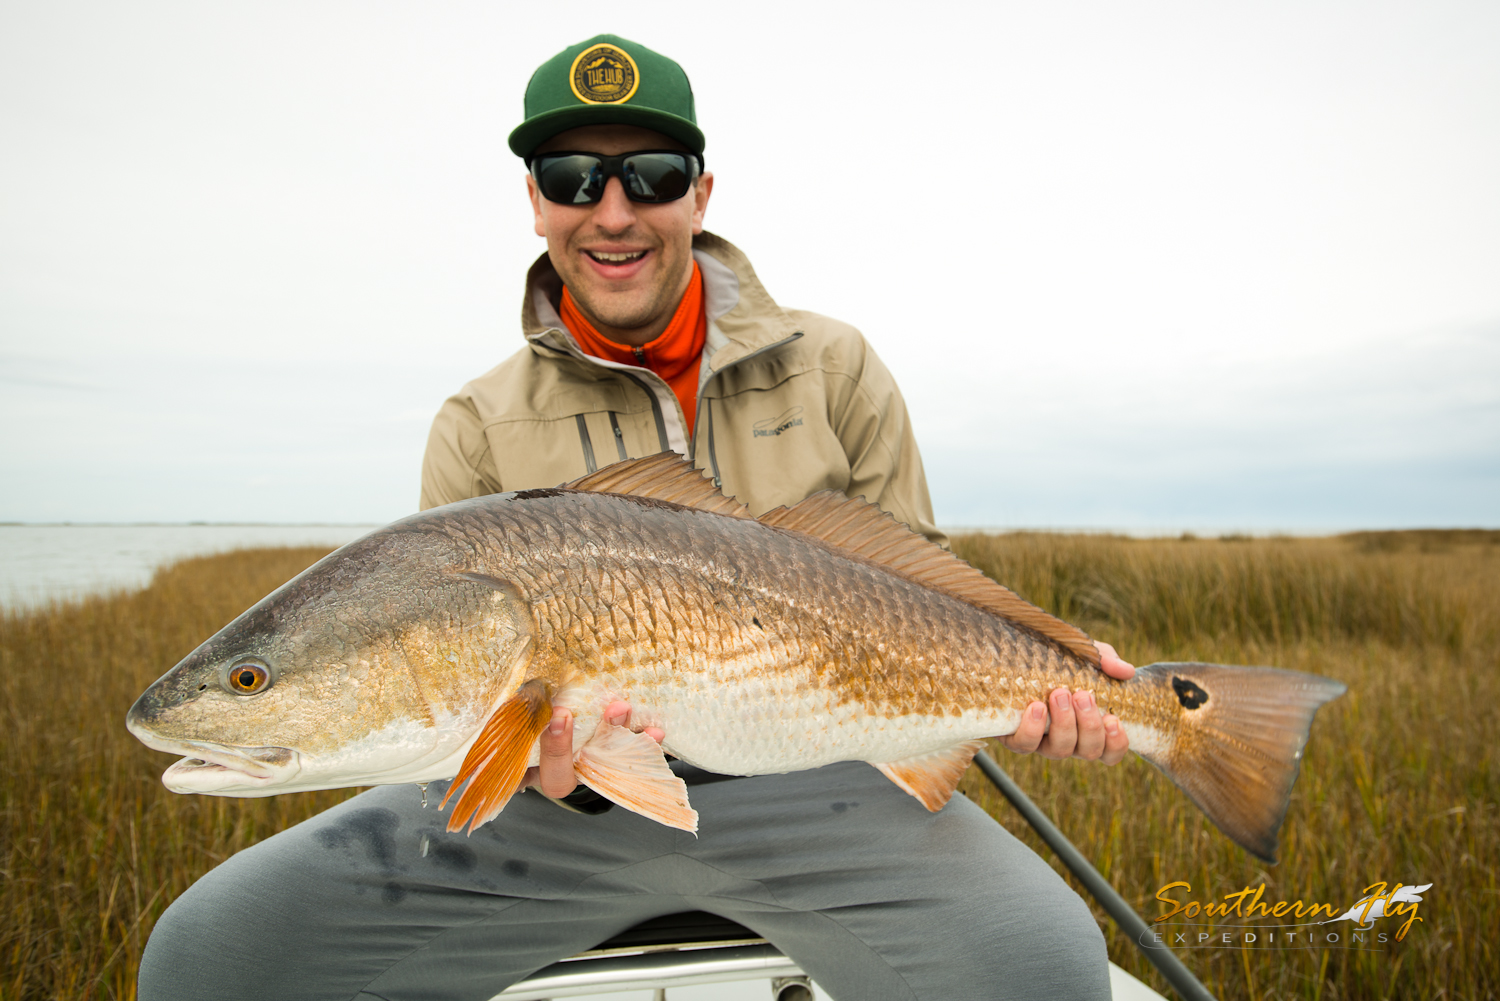 Fishing hopedale louisiana with southern fly expeditions and captain brandon keck